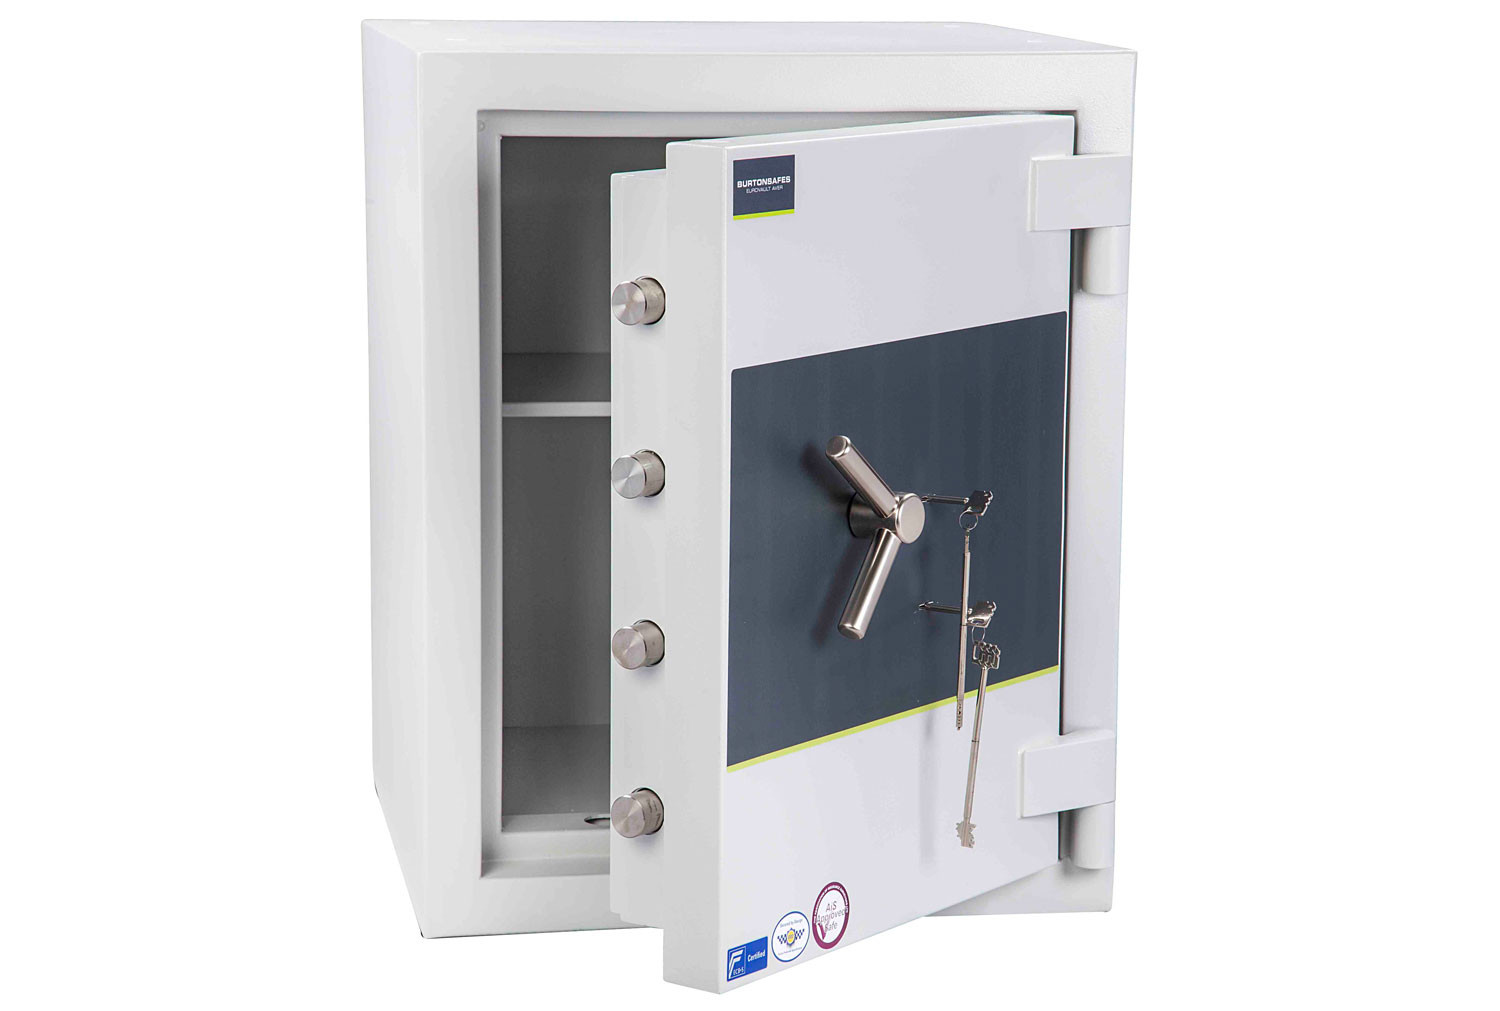 Burton Eurovault Aver Grade 5 Size 2 Safe With Dual Key Lock (163ltrs)